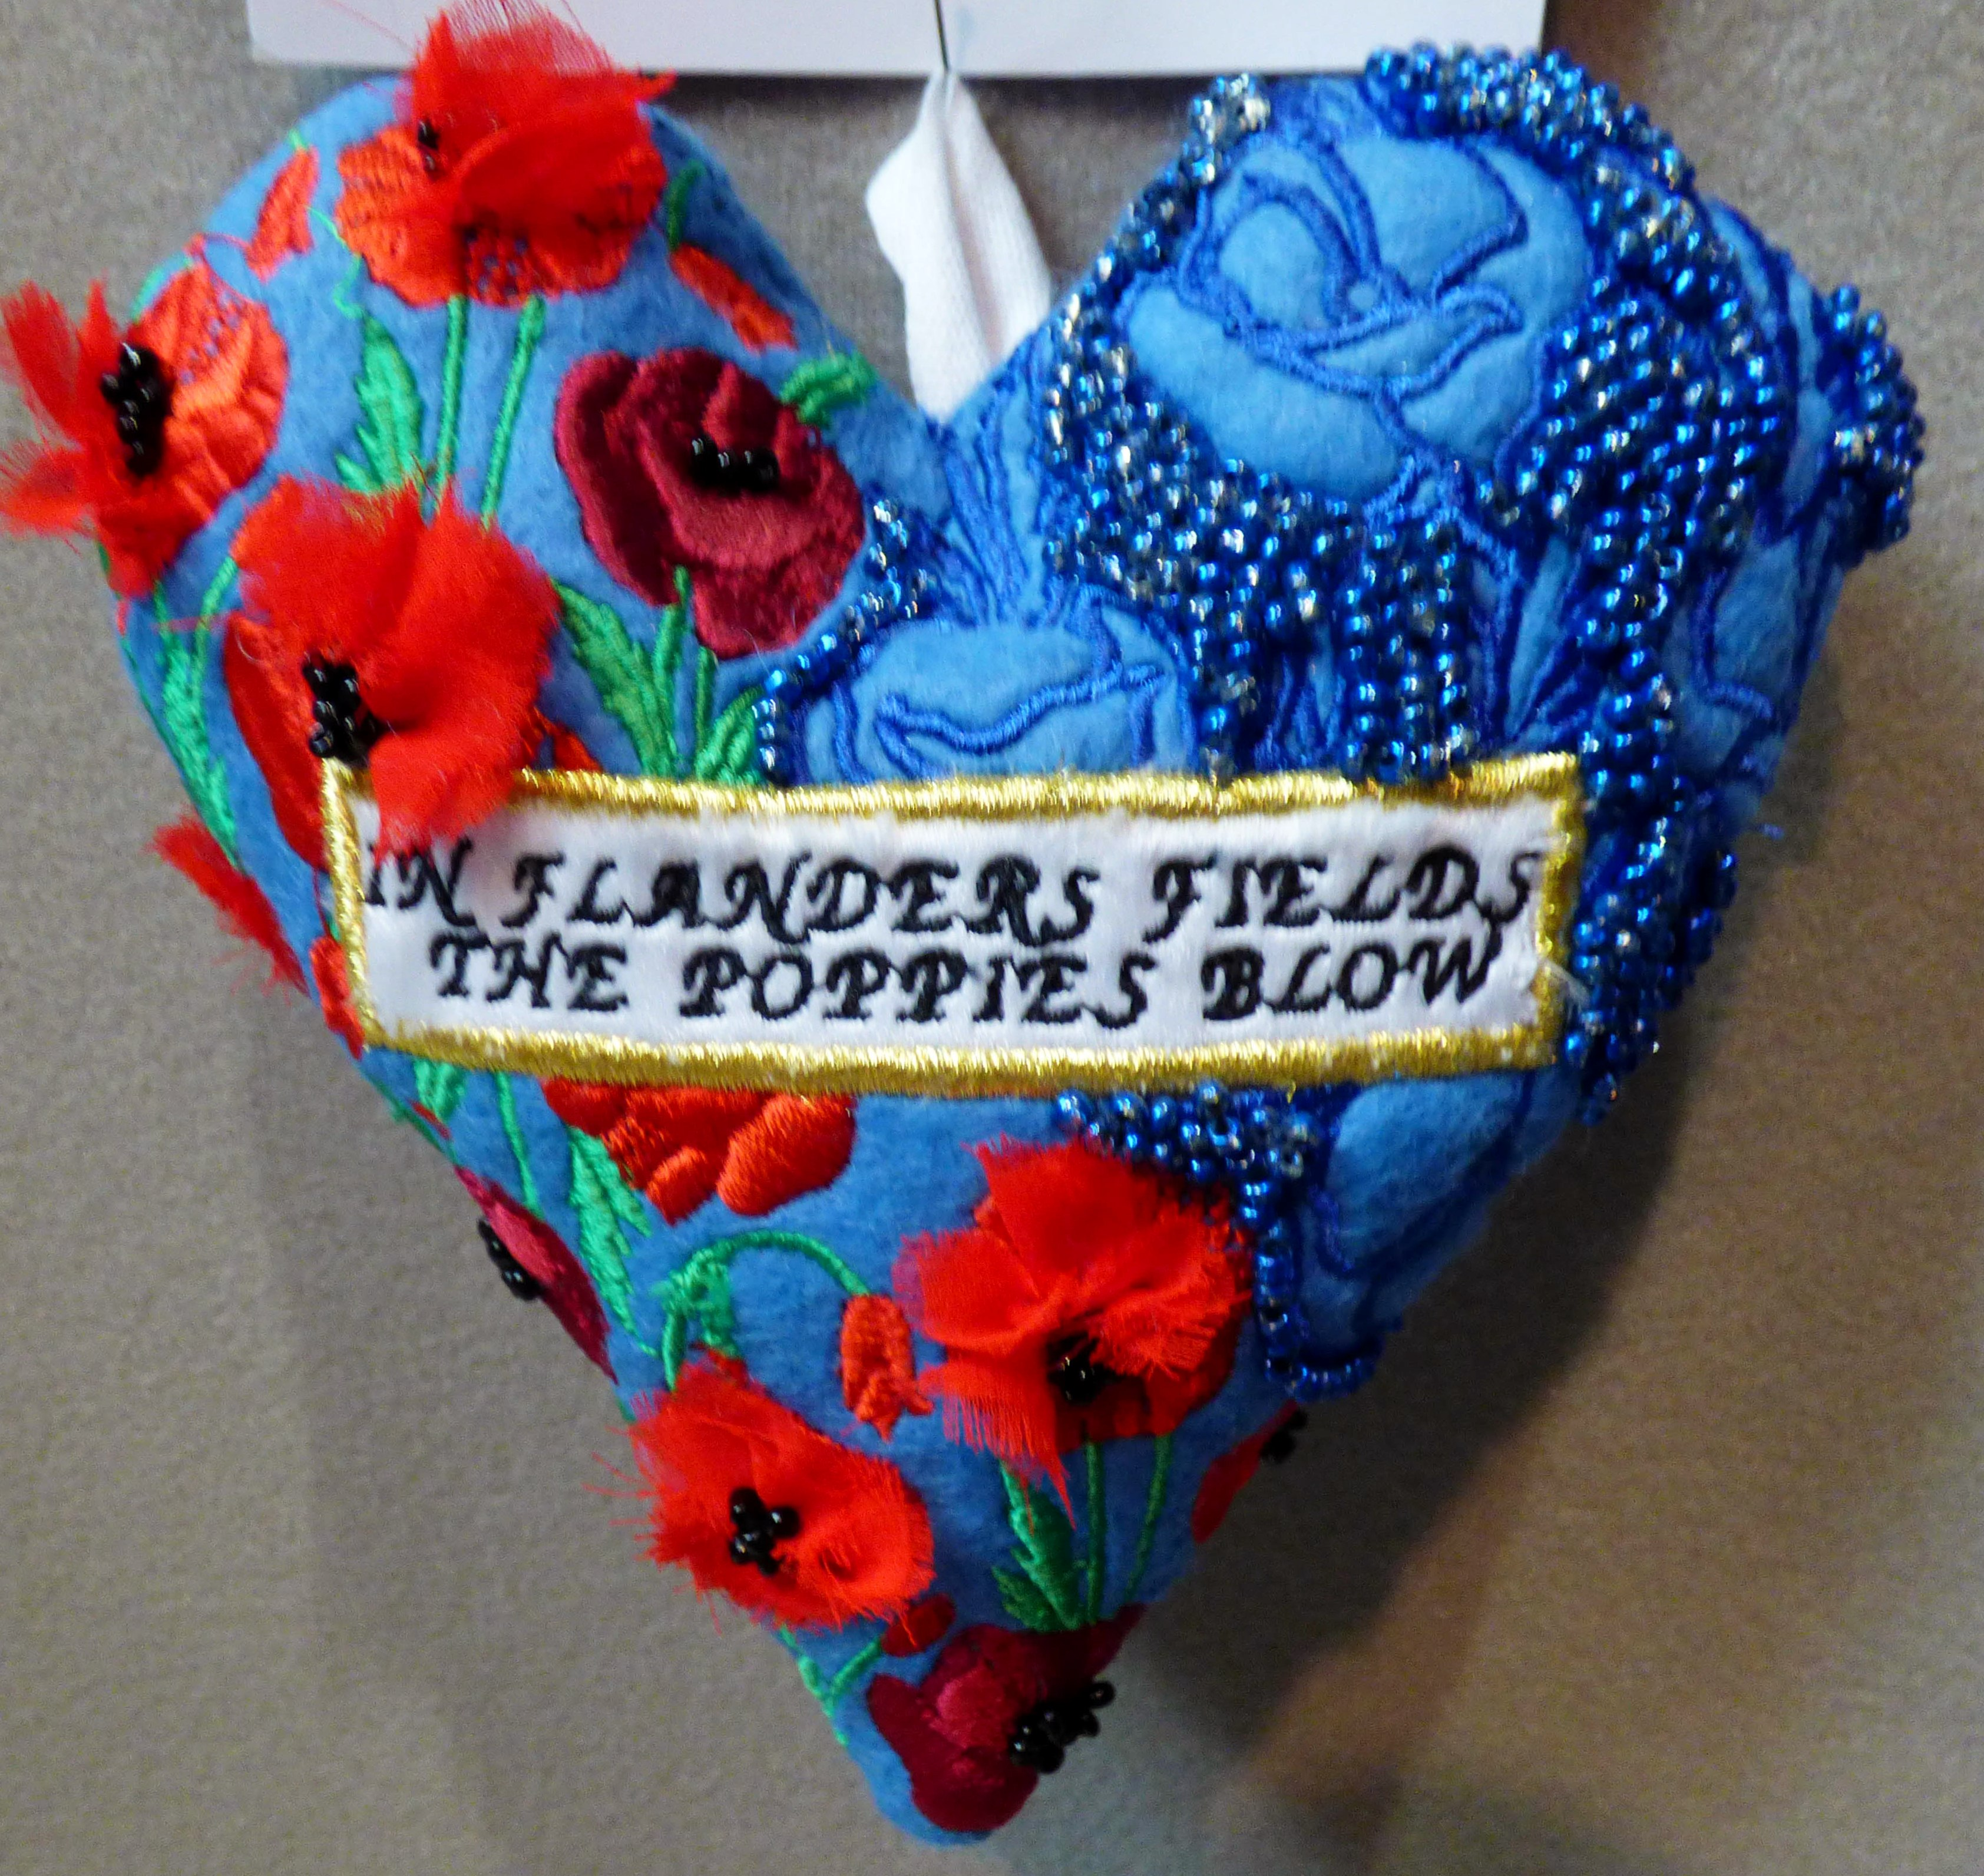 HEART OF A WARRIER by Shannen McCusker, in memory of John McCrae, 100 Hearts exhibition, Liverpool Cathedral, Sept 2018